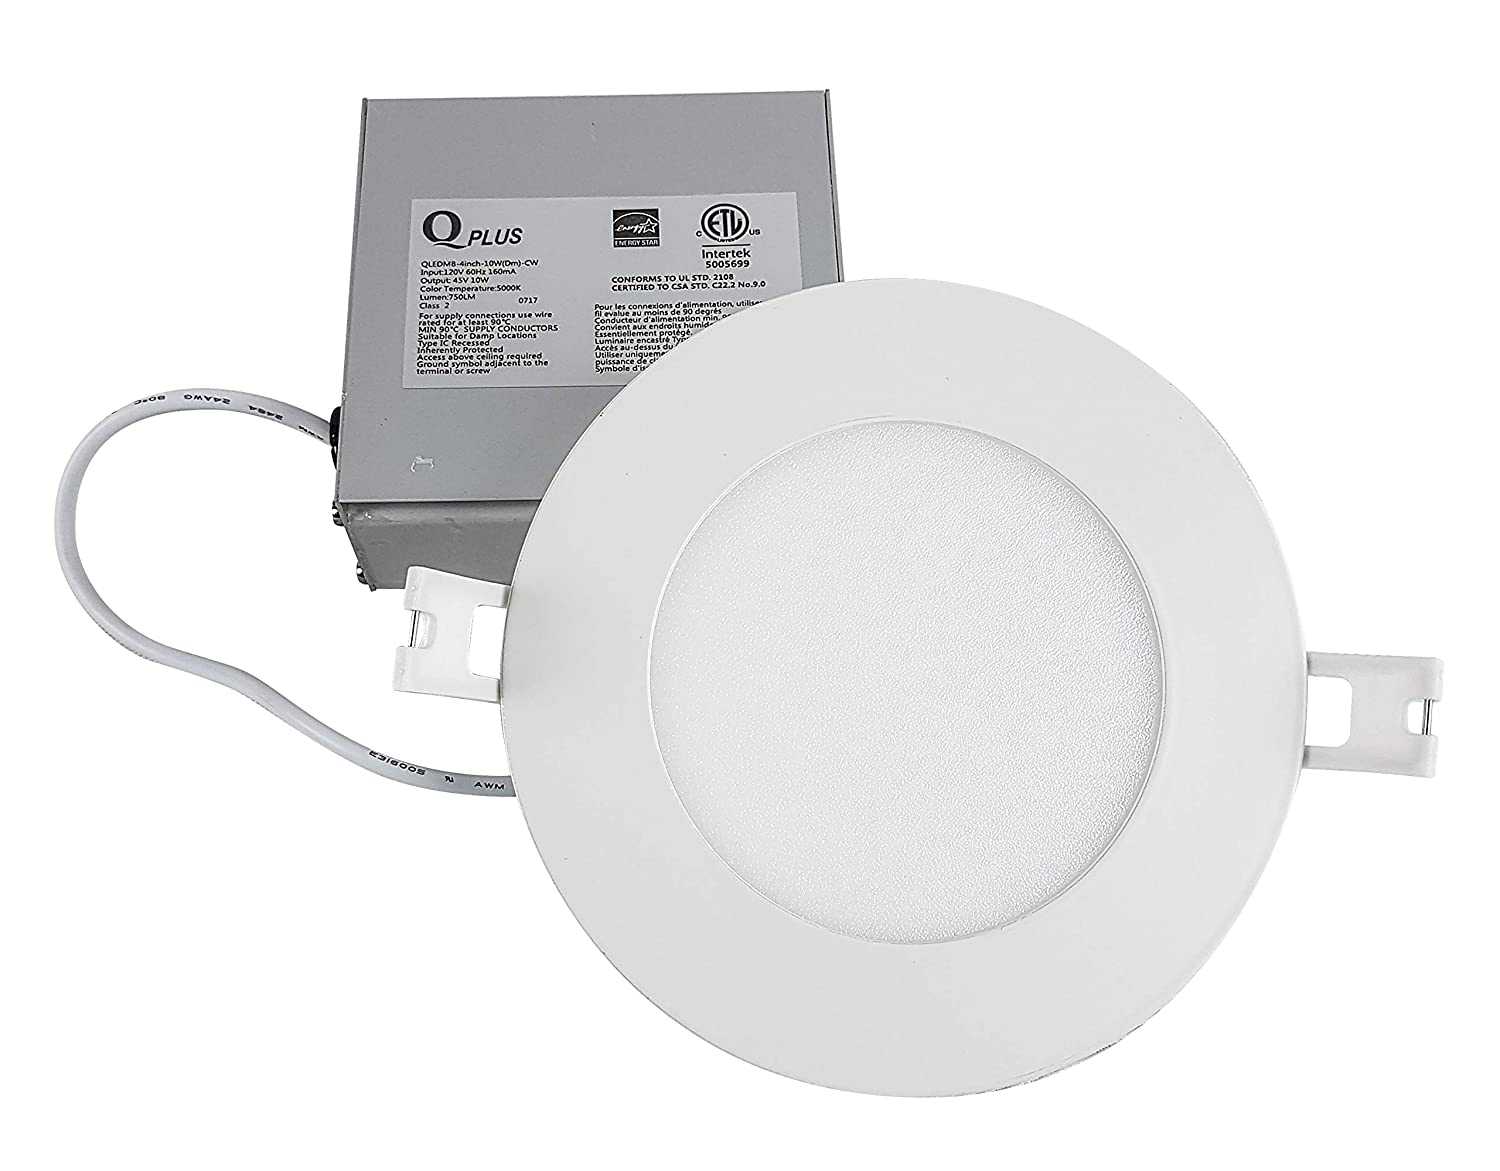 LED Slim Panel Recessed Down Light, 4 inch, 6500K, (Daylight), 10 Watts, 750 Lumens, 50,000 Hours, Dimmable, cETLus & Energy Star Rated, IC Rated for Insulation Contact QPlus